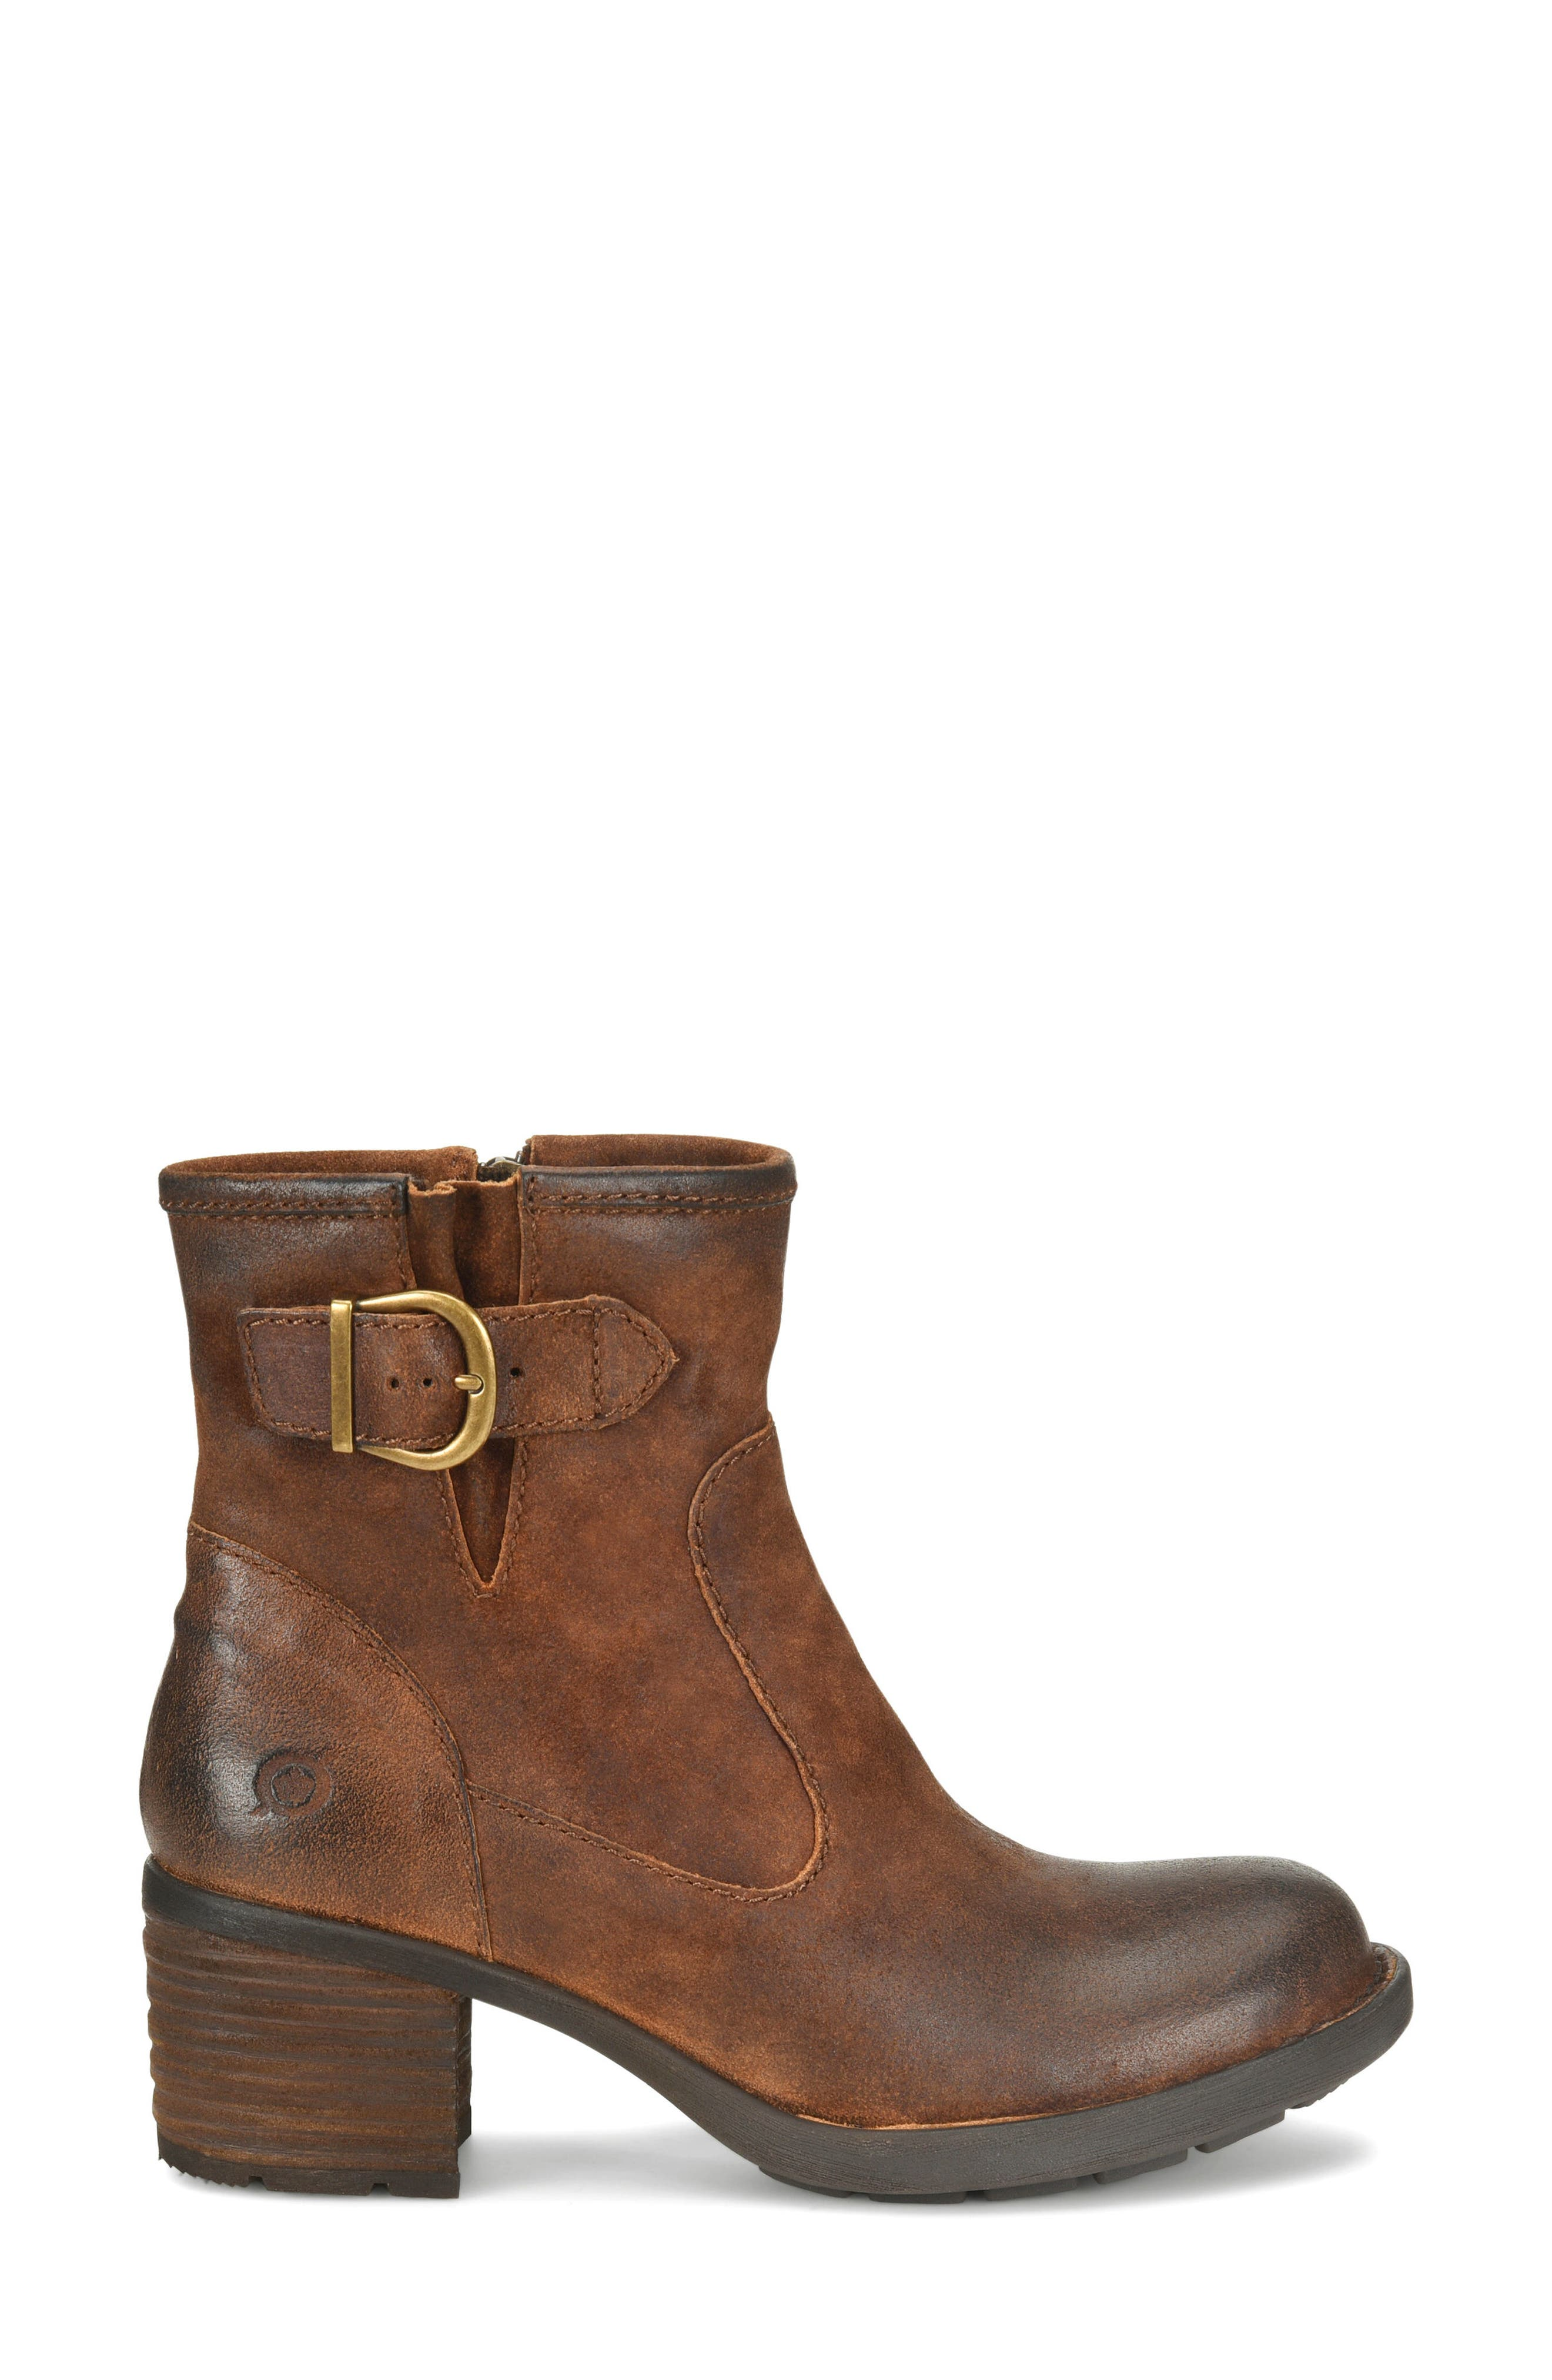 Gunn Engineer Bootie,                             Alternate thumbnail 3, color,                             Rust Distressed Leather